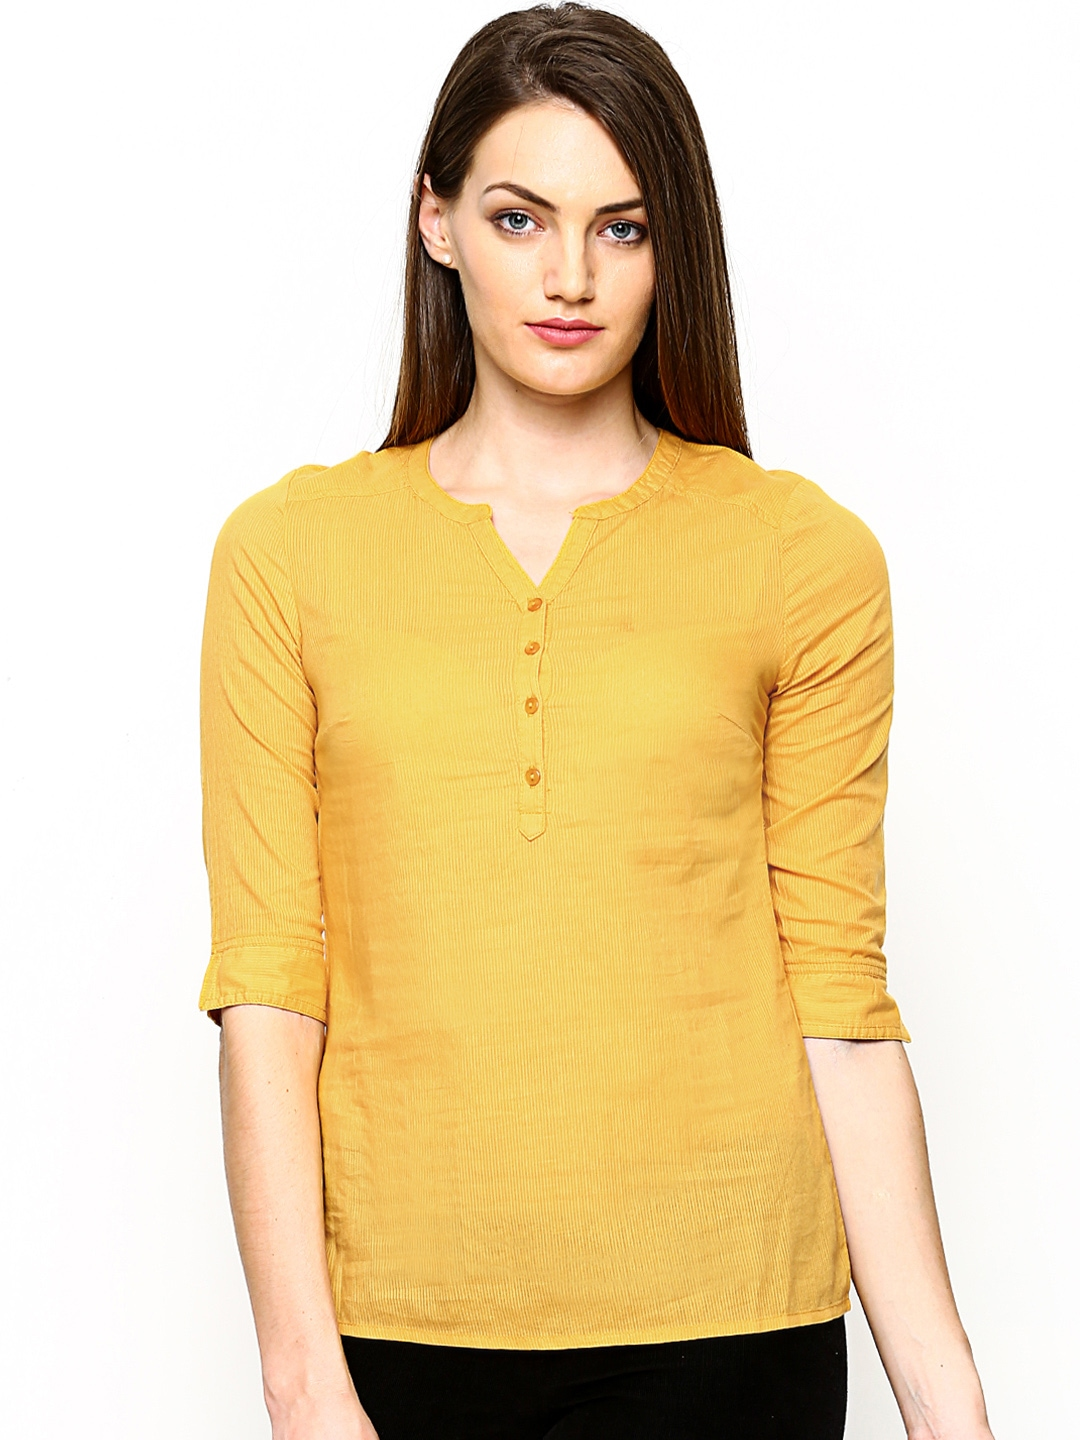 For the top, wear a mustard yellow cowl neck ribbed relaxed fit sweater. Pair it with white skinny jeans to look refreshing and lean. For the shoes, wear camel .